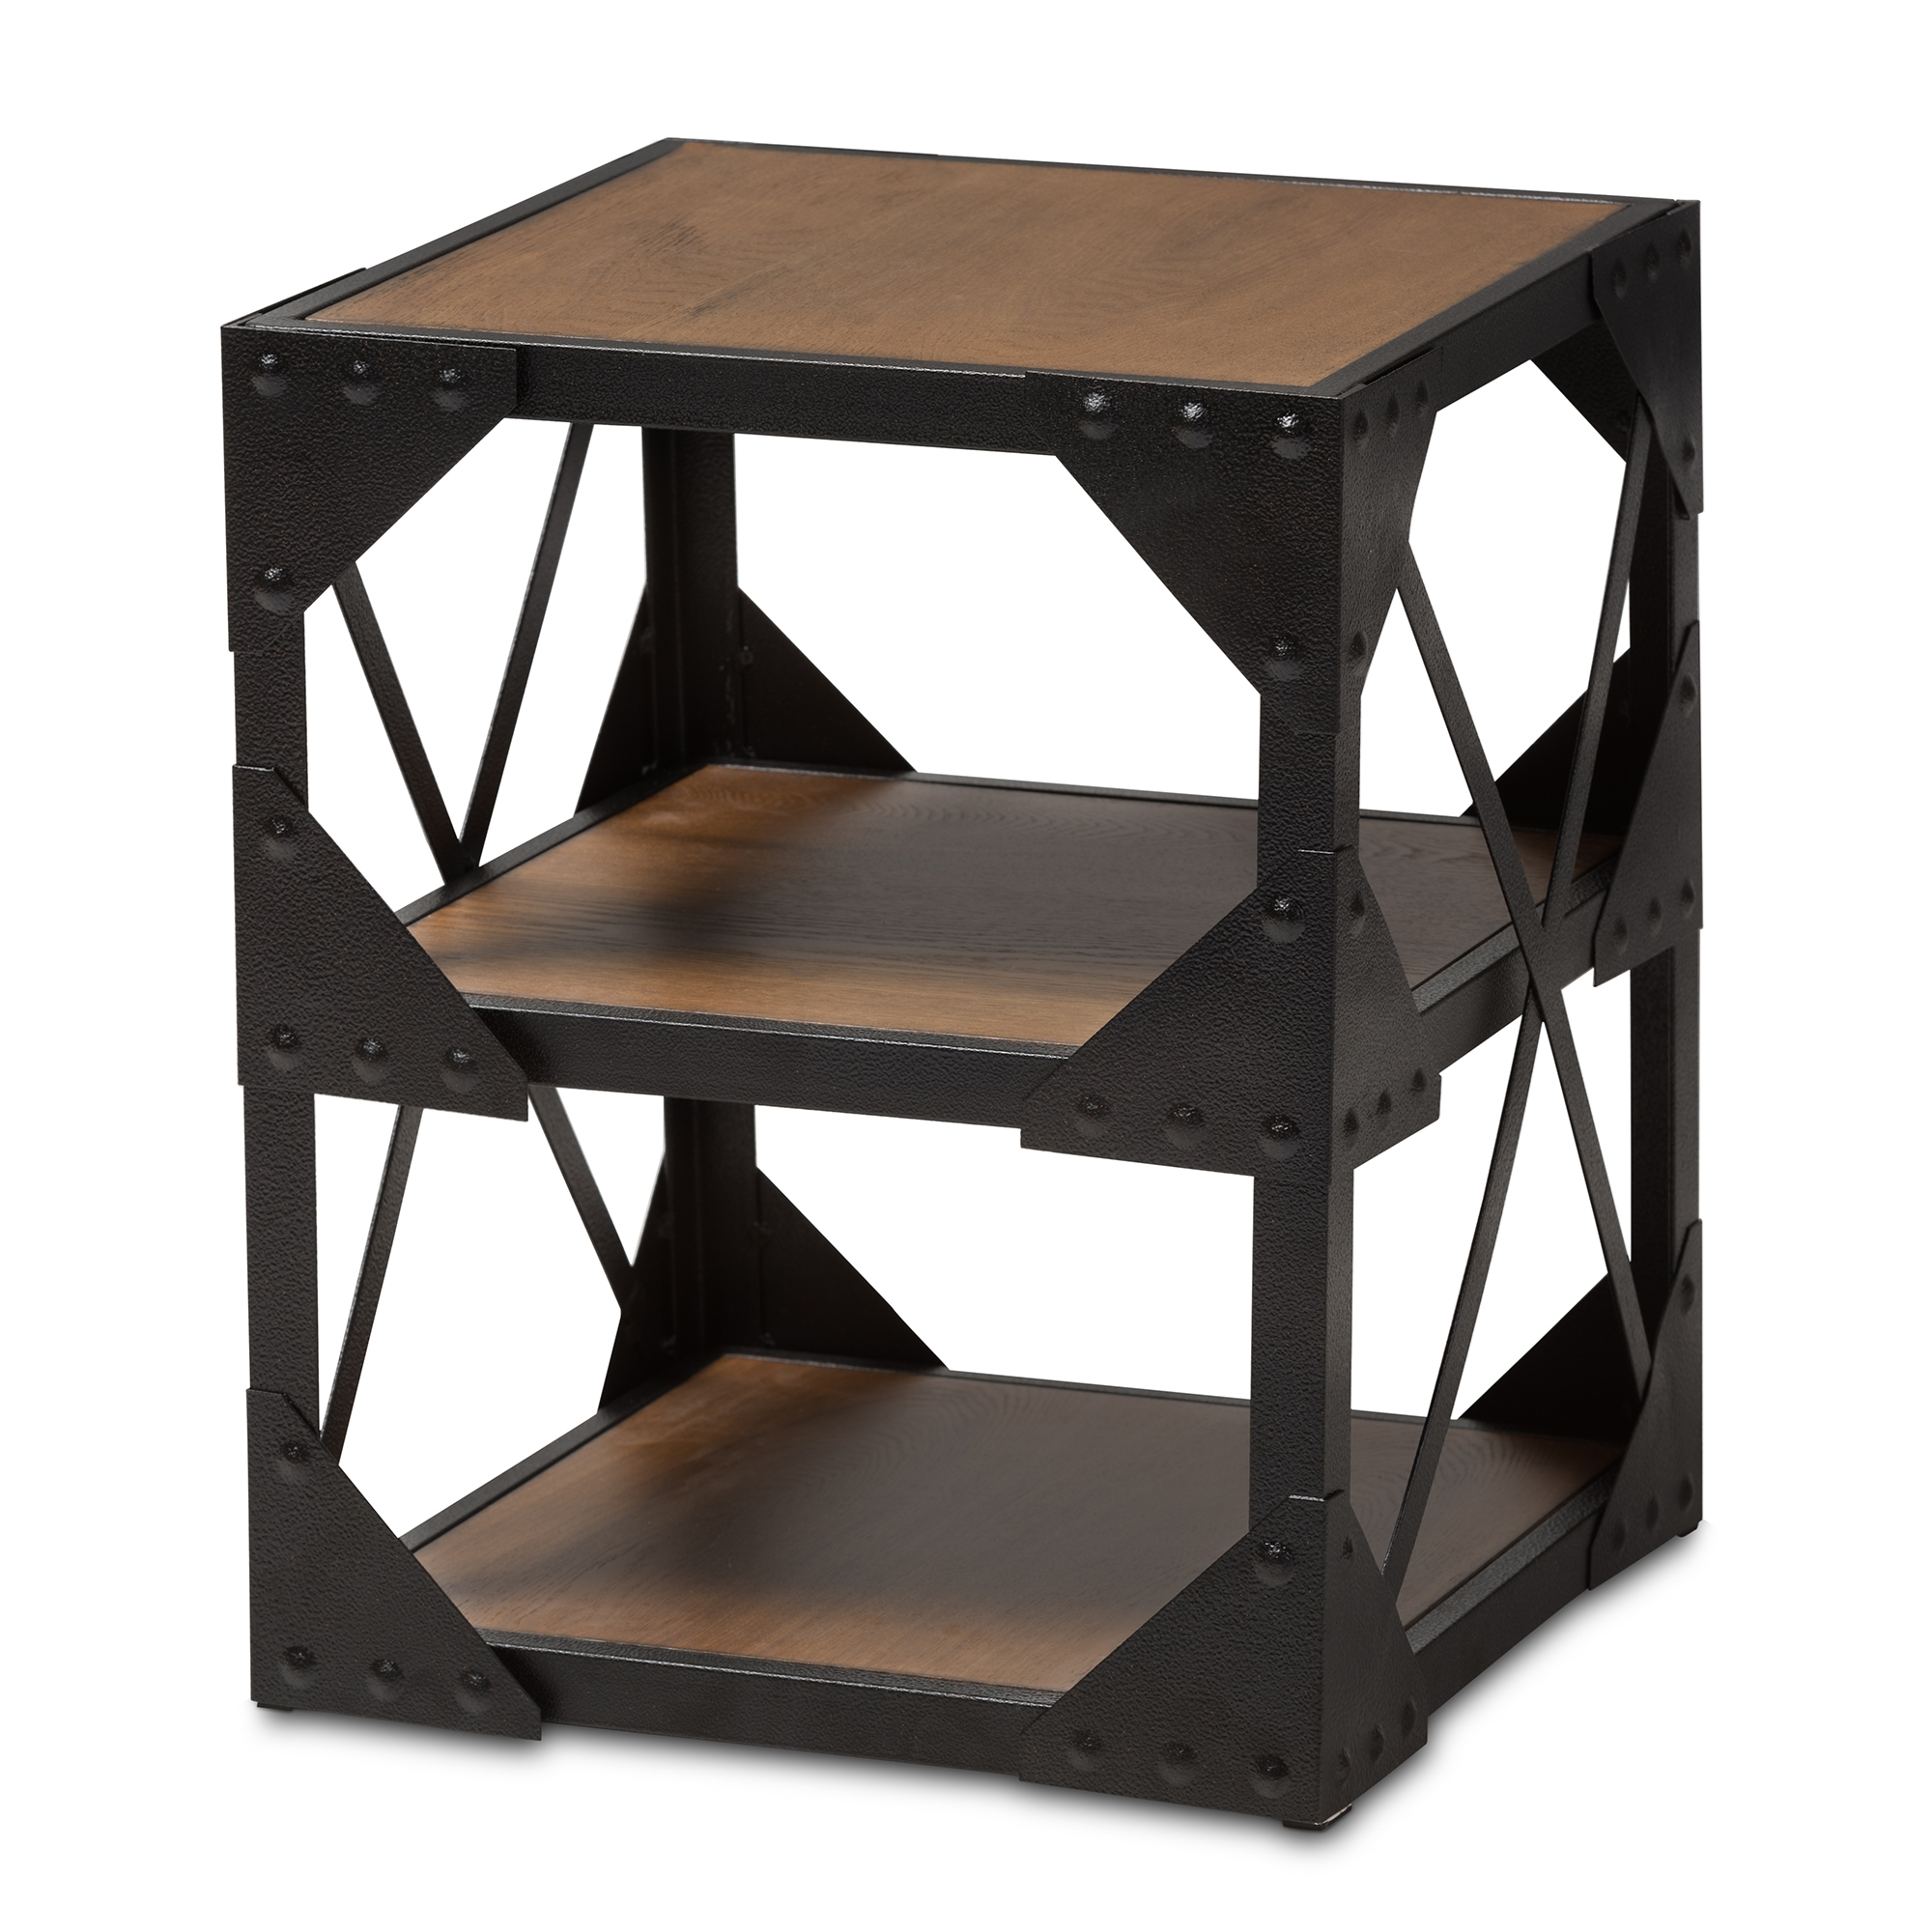 Baxton Studio Hudson Rustic Industrial Style Antique Black Textured  Finished Metal Distressed Wood Occasional Side Table